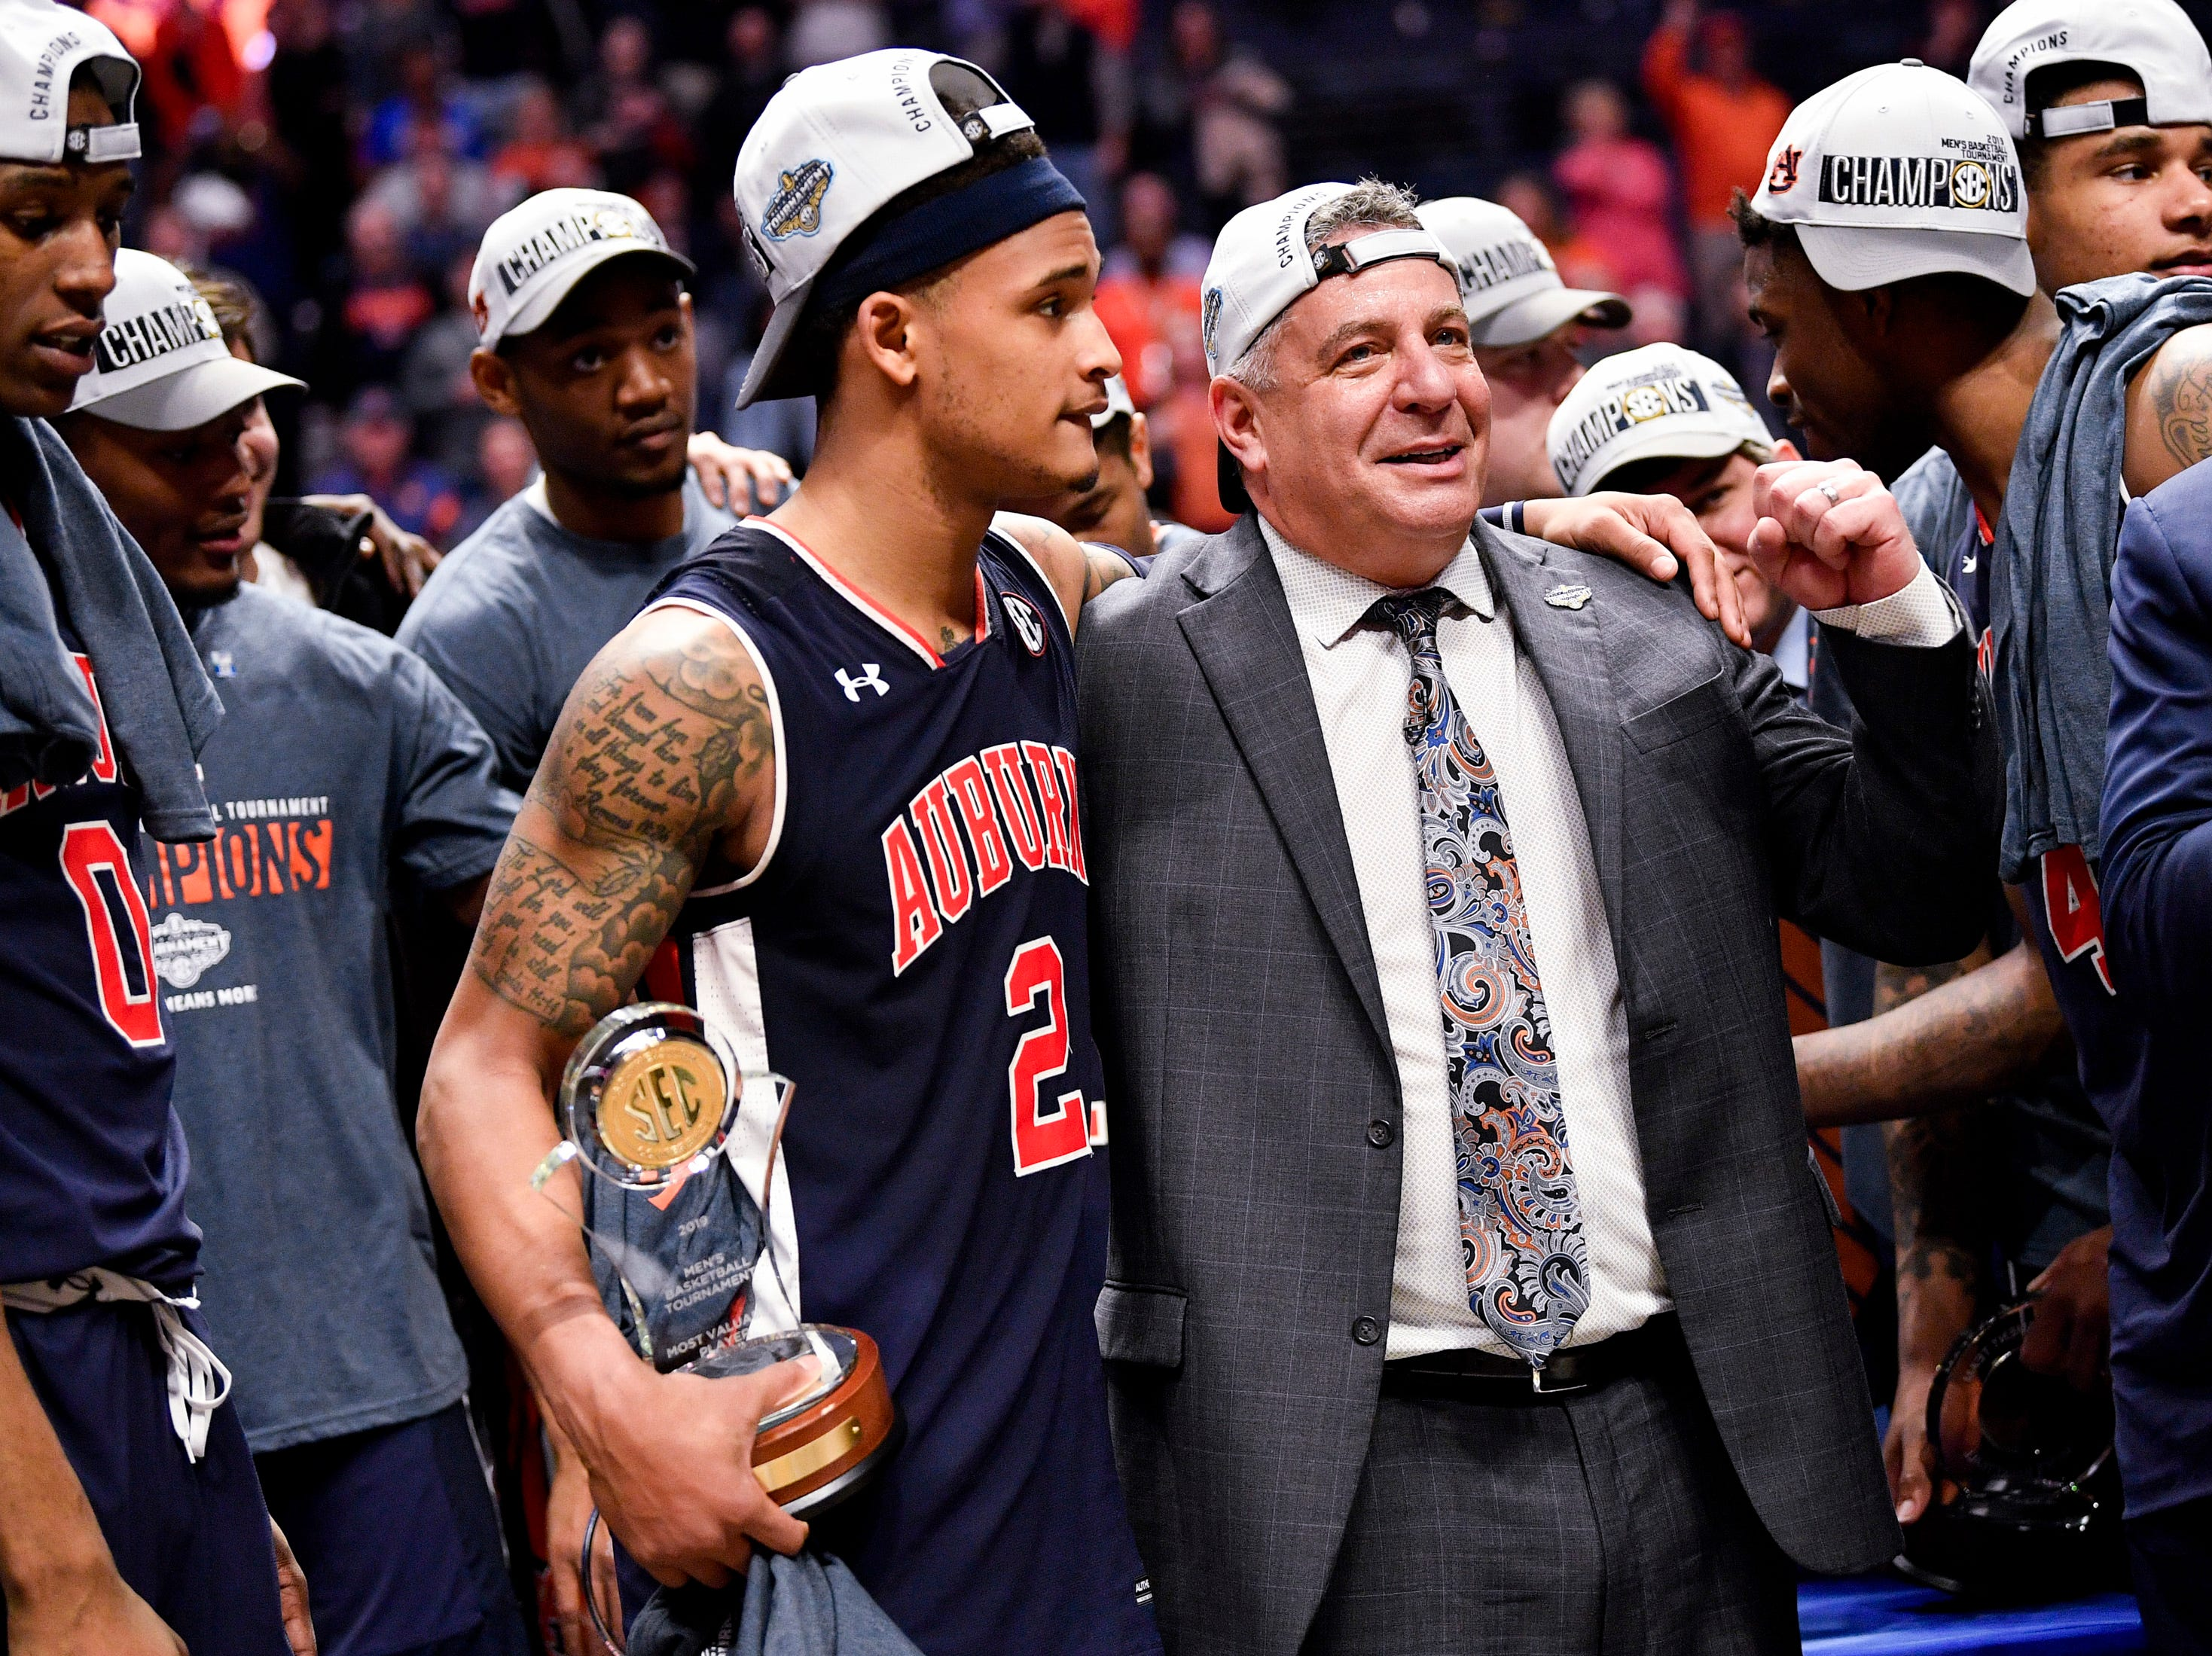 Auburn guard Bryce Brown (2) and head coach Bruce Pearl celebrate after their SEC Men's Basketball Tournament championship victory against Tennessee at Bridgestone Arena in Nashville, Tenn., Sunday, March 17, 2019.